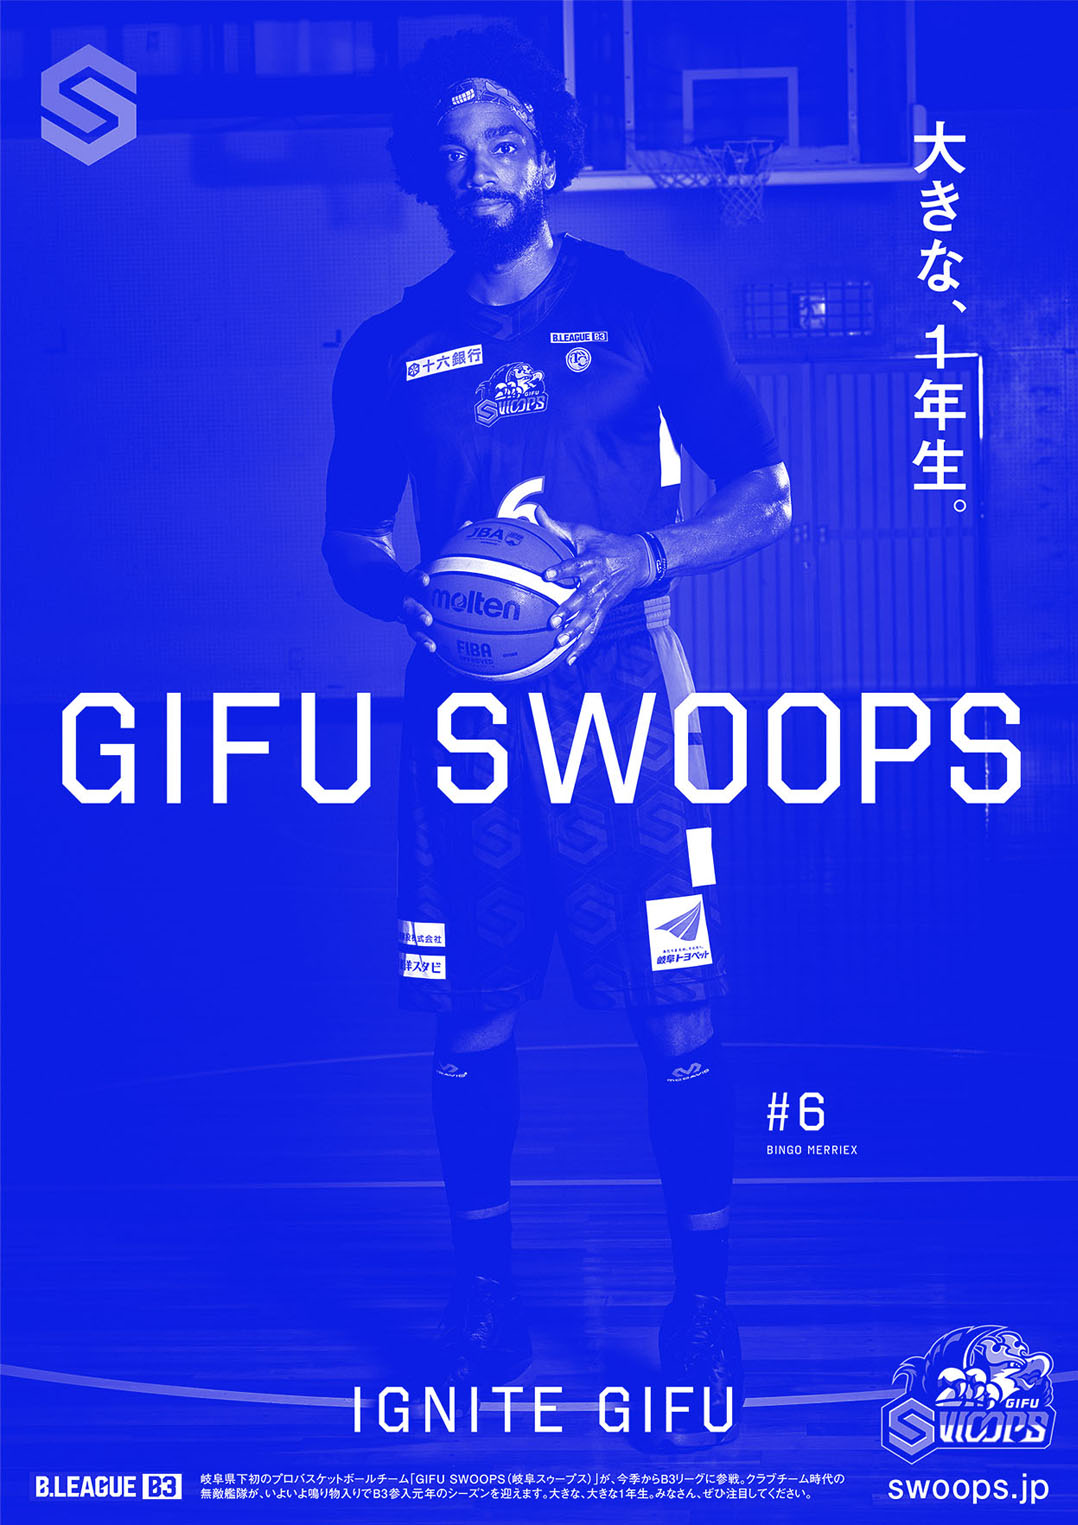 GIFU SWOOPS